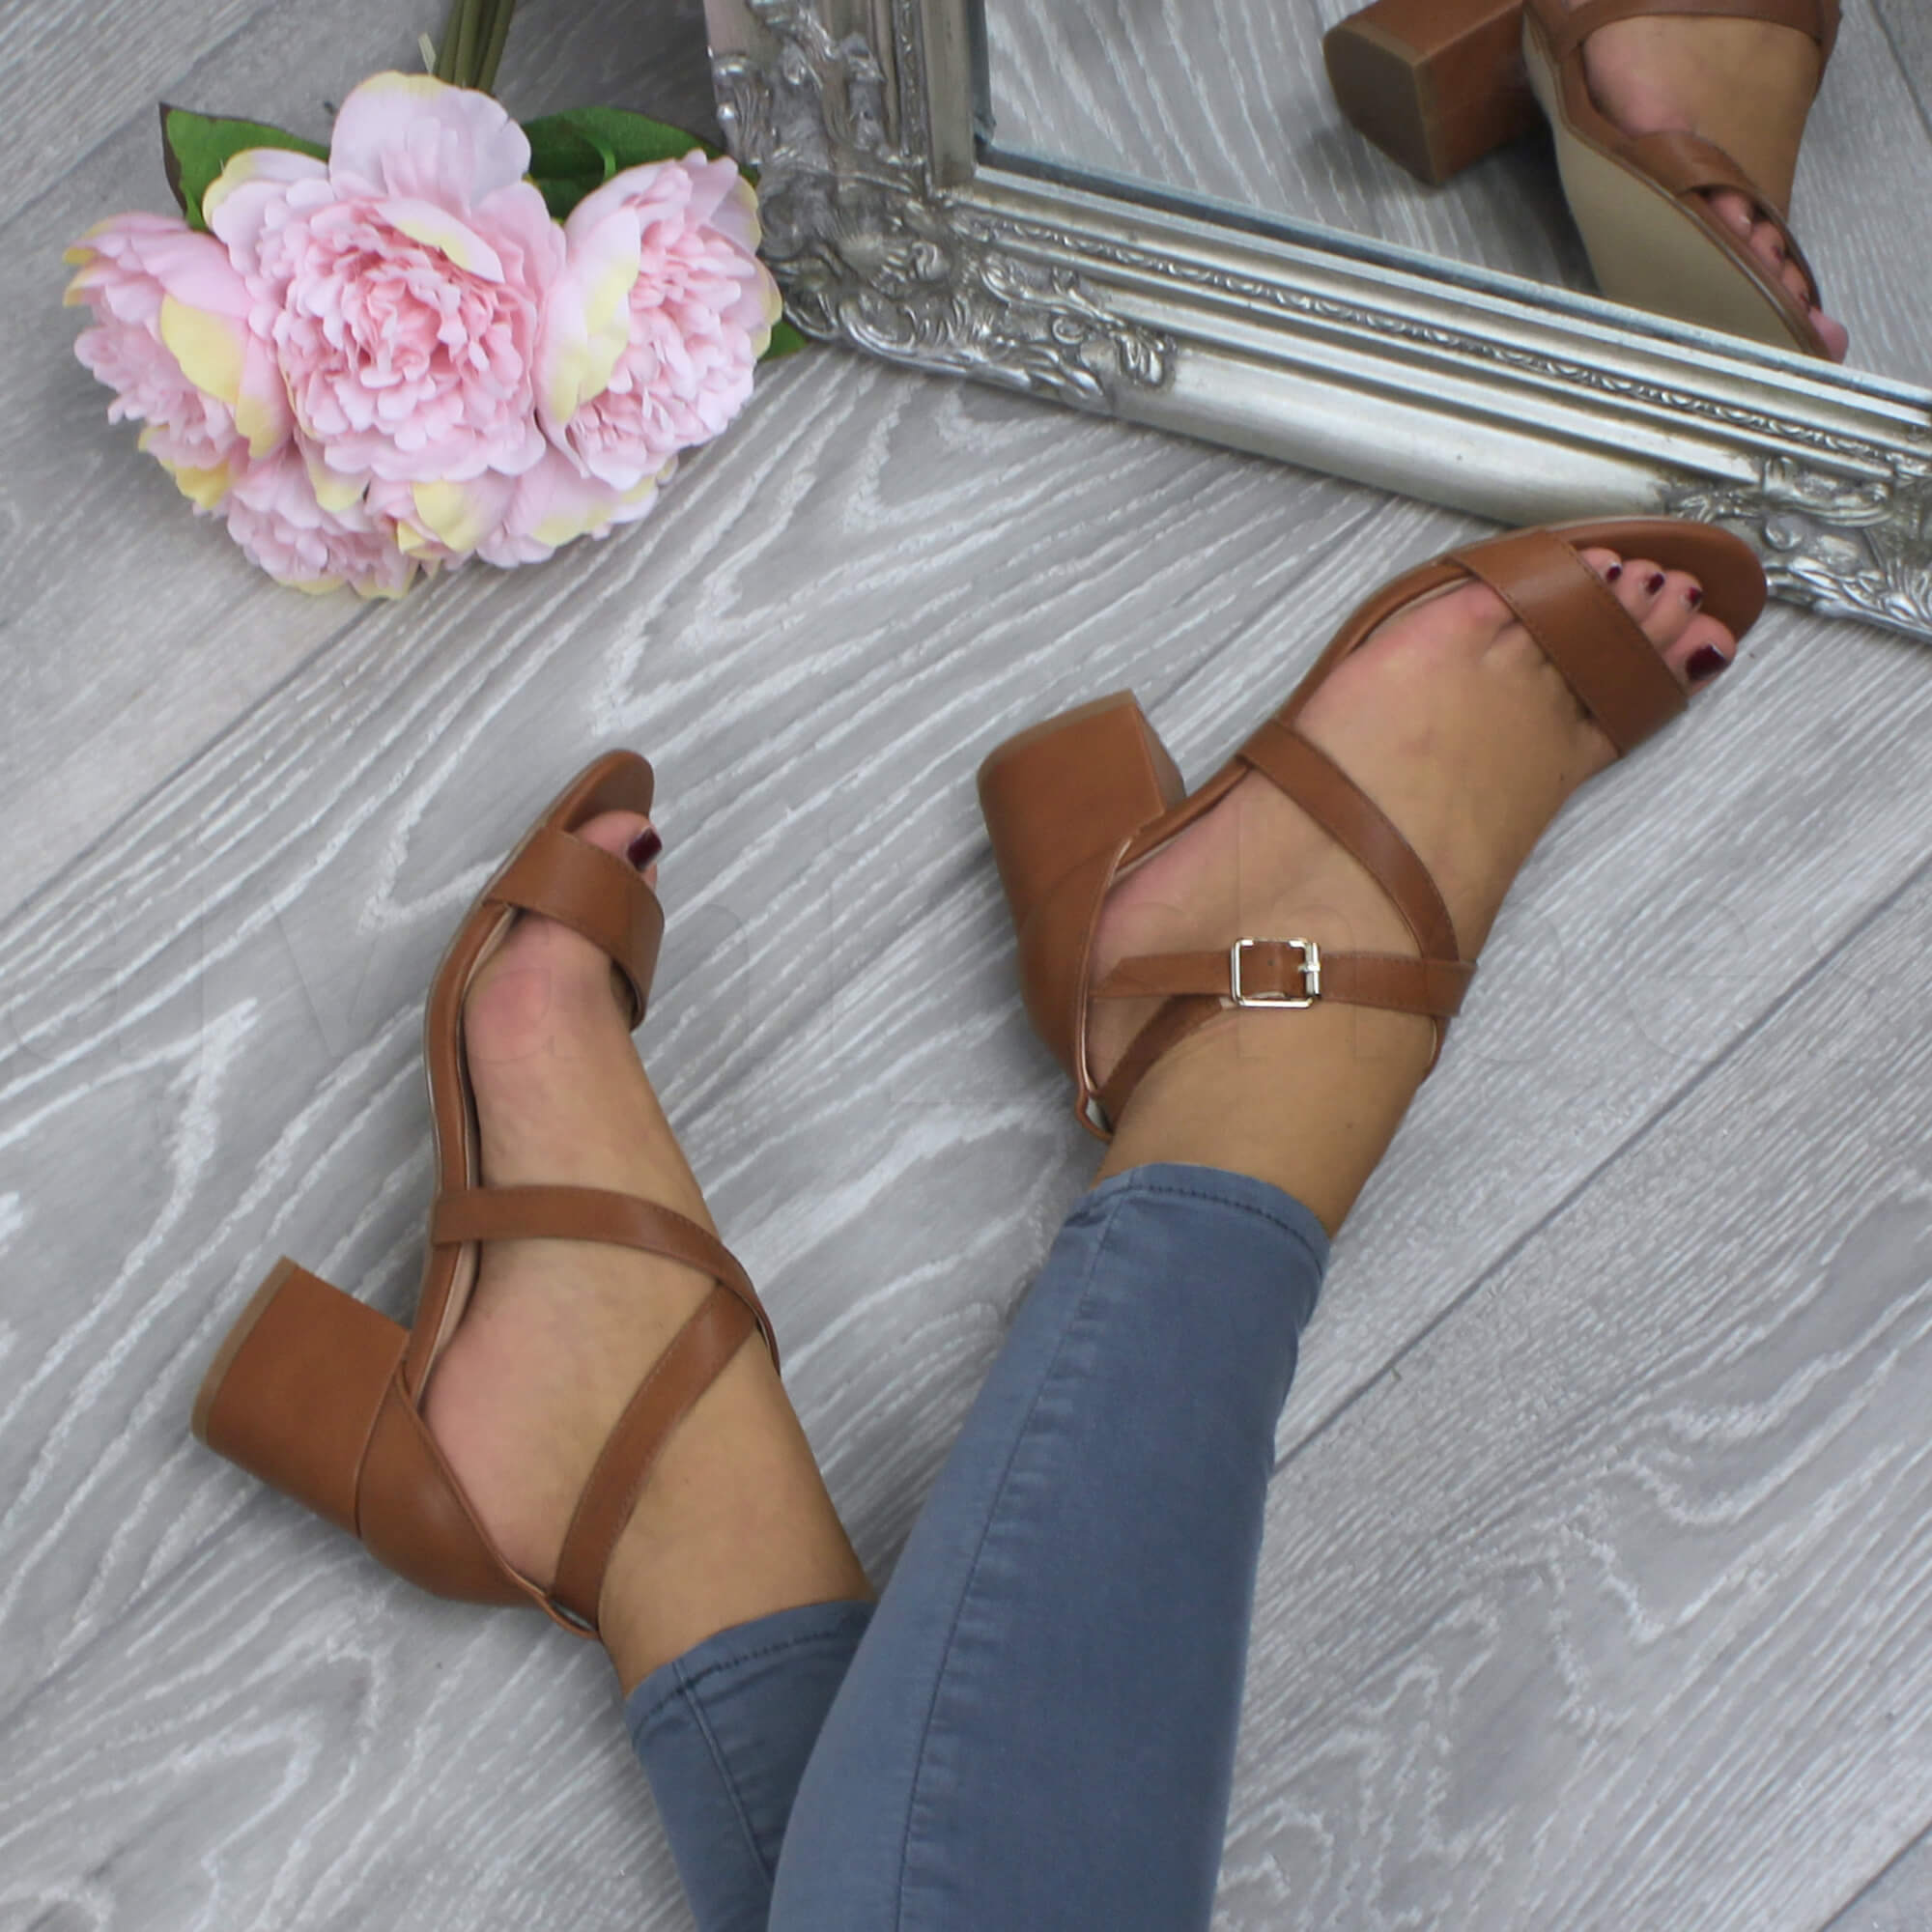 WOMENS-LADIES-MID-LOW-BLOCK-HEEL-CROSS-STRAPS-PARTY-STRAPPY-SANDALS-SHOES-SIZE thumbnail 93